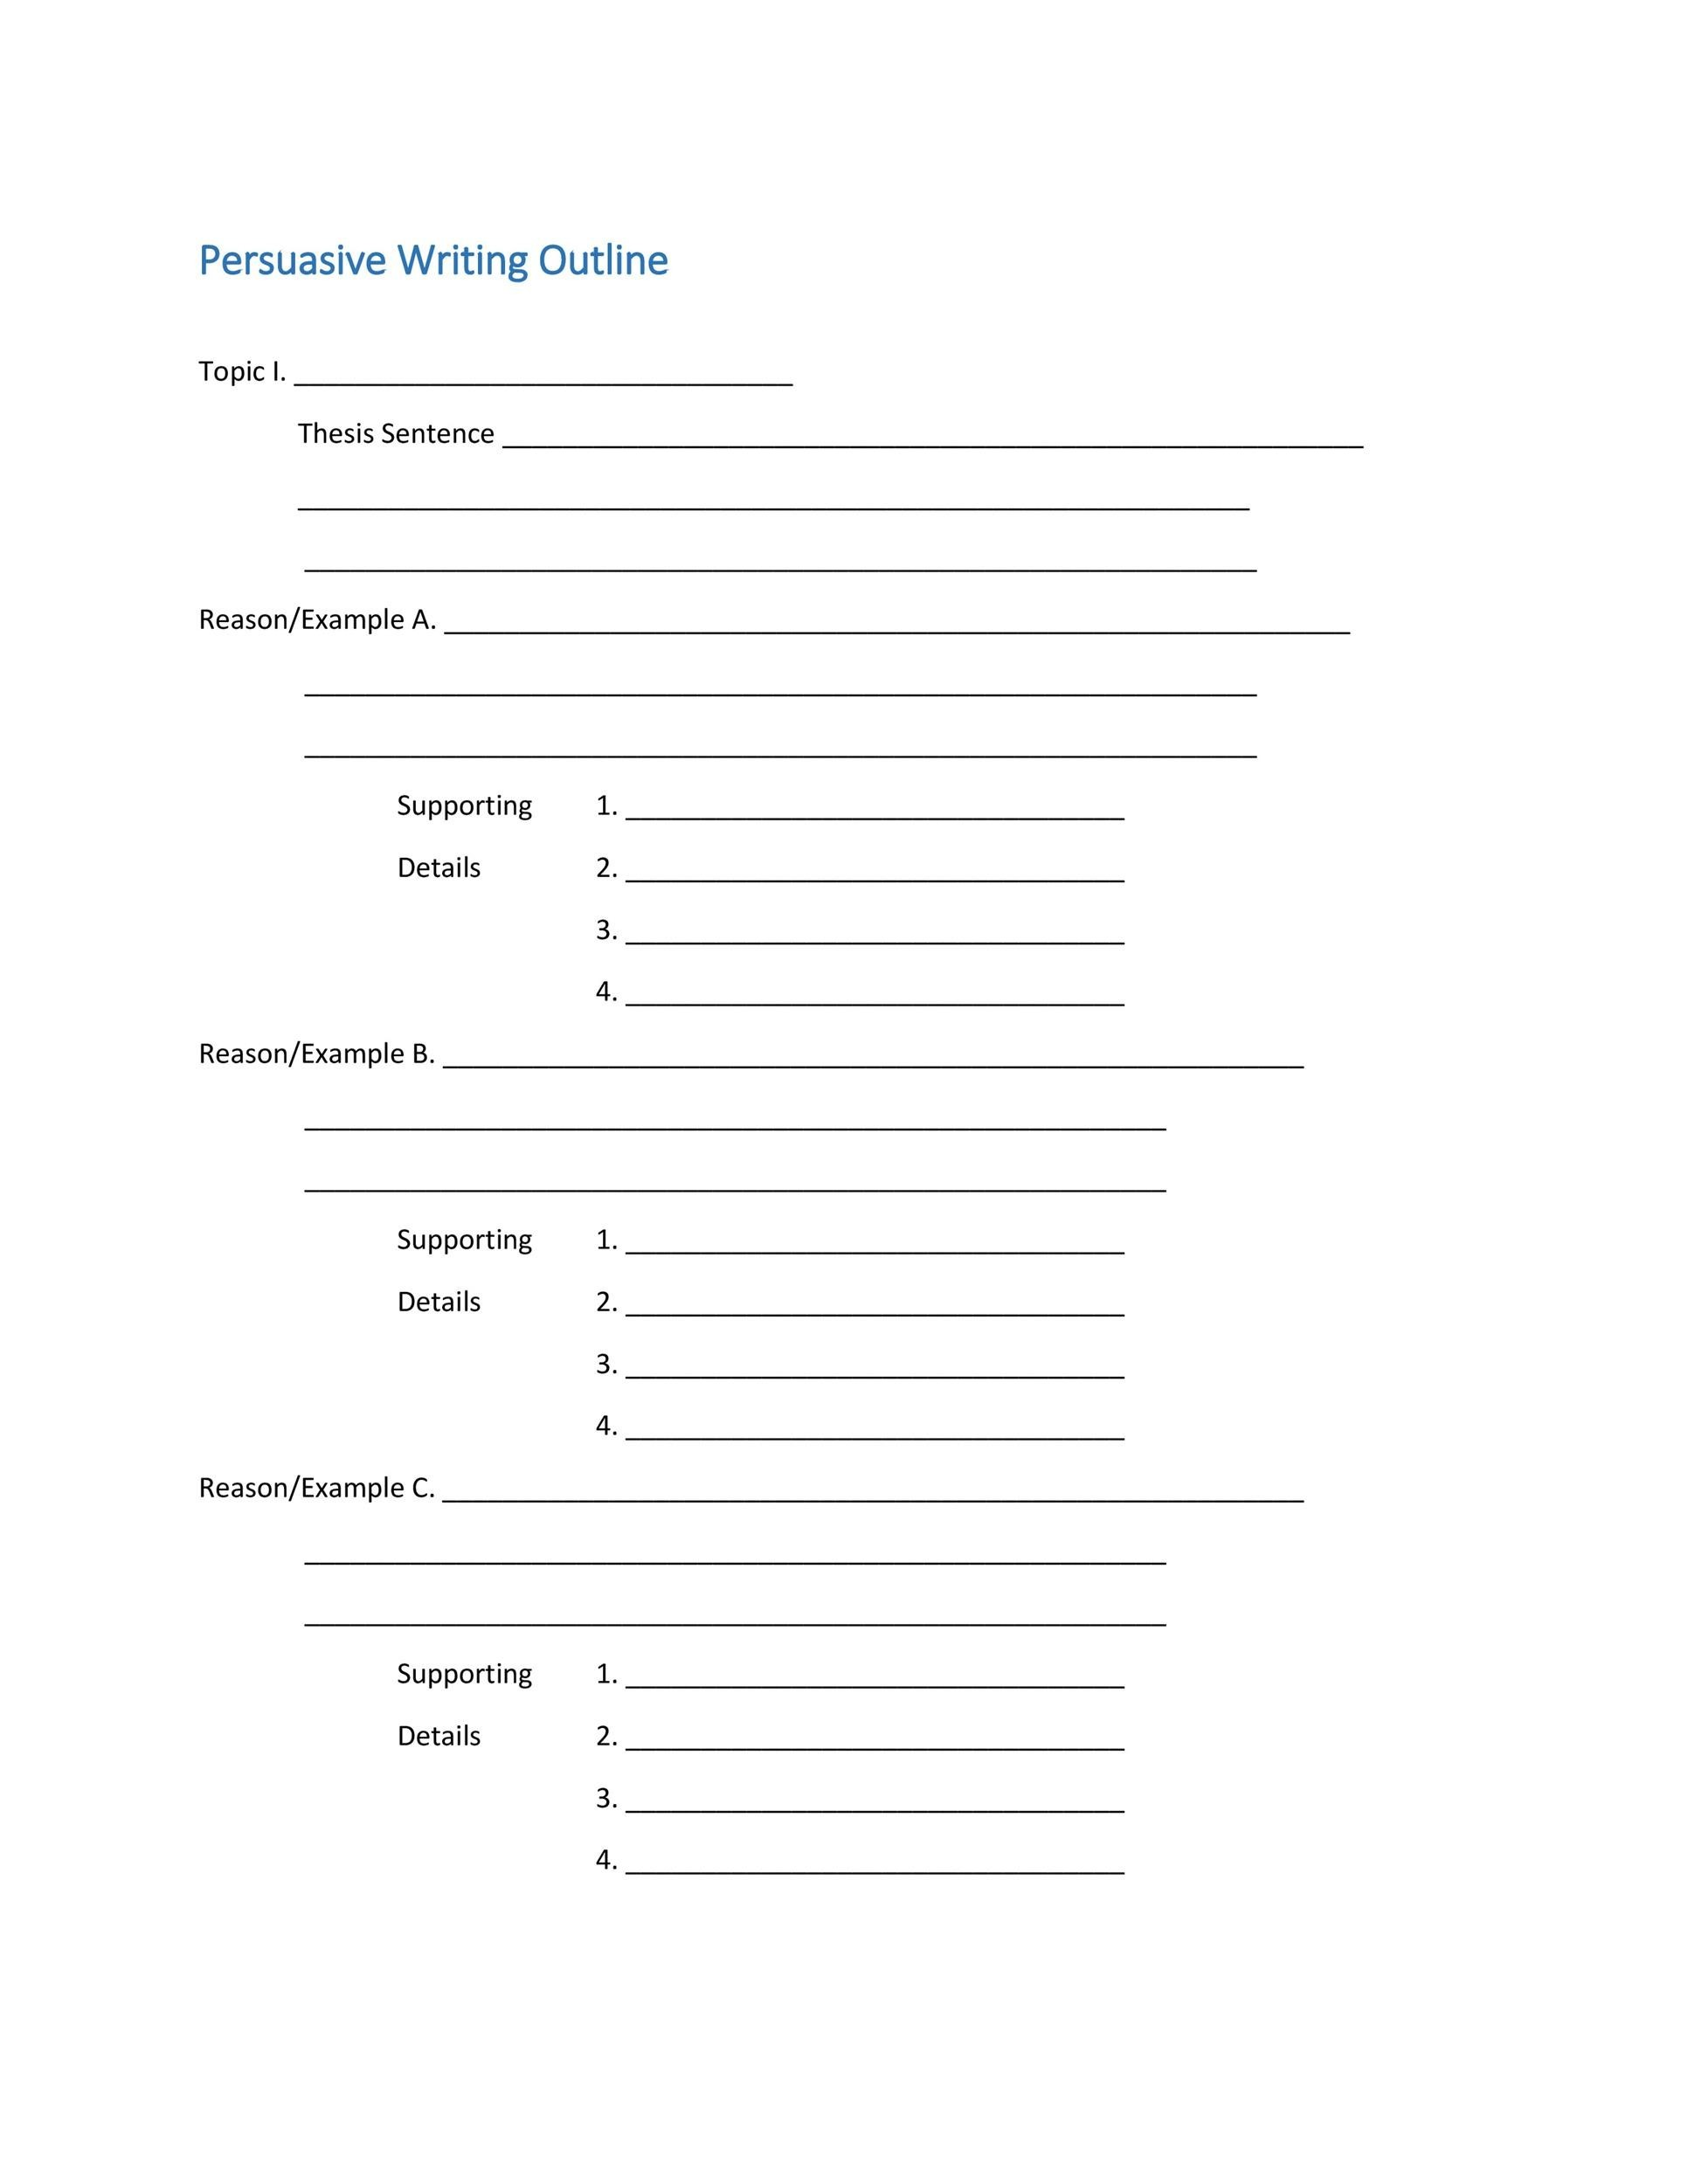 Full Size of Template Extended Essay Outline Persuasive Structure Layout